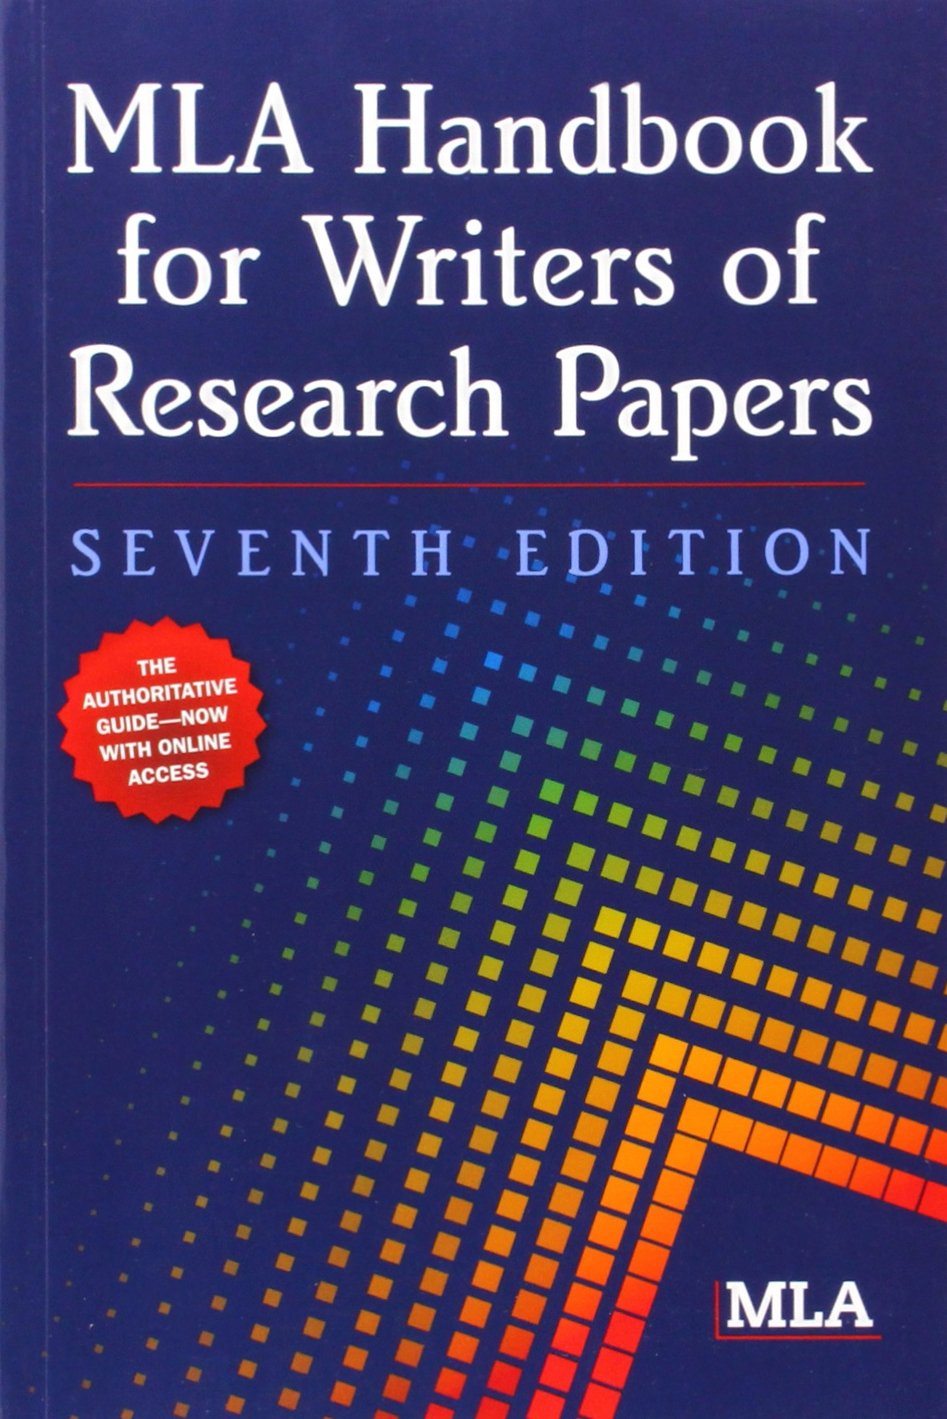 buy mla handbook for writers of research papers mla handbook for buy mla handbook for writers of research papers mla handbook for writers of research ppapers book online at low prices in mla handbook for writers